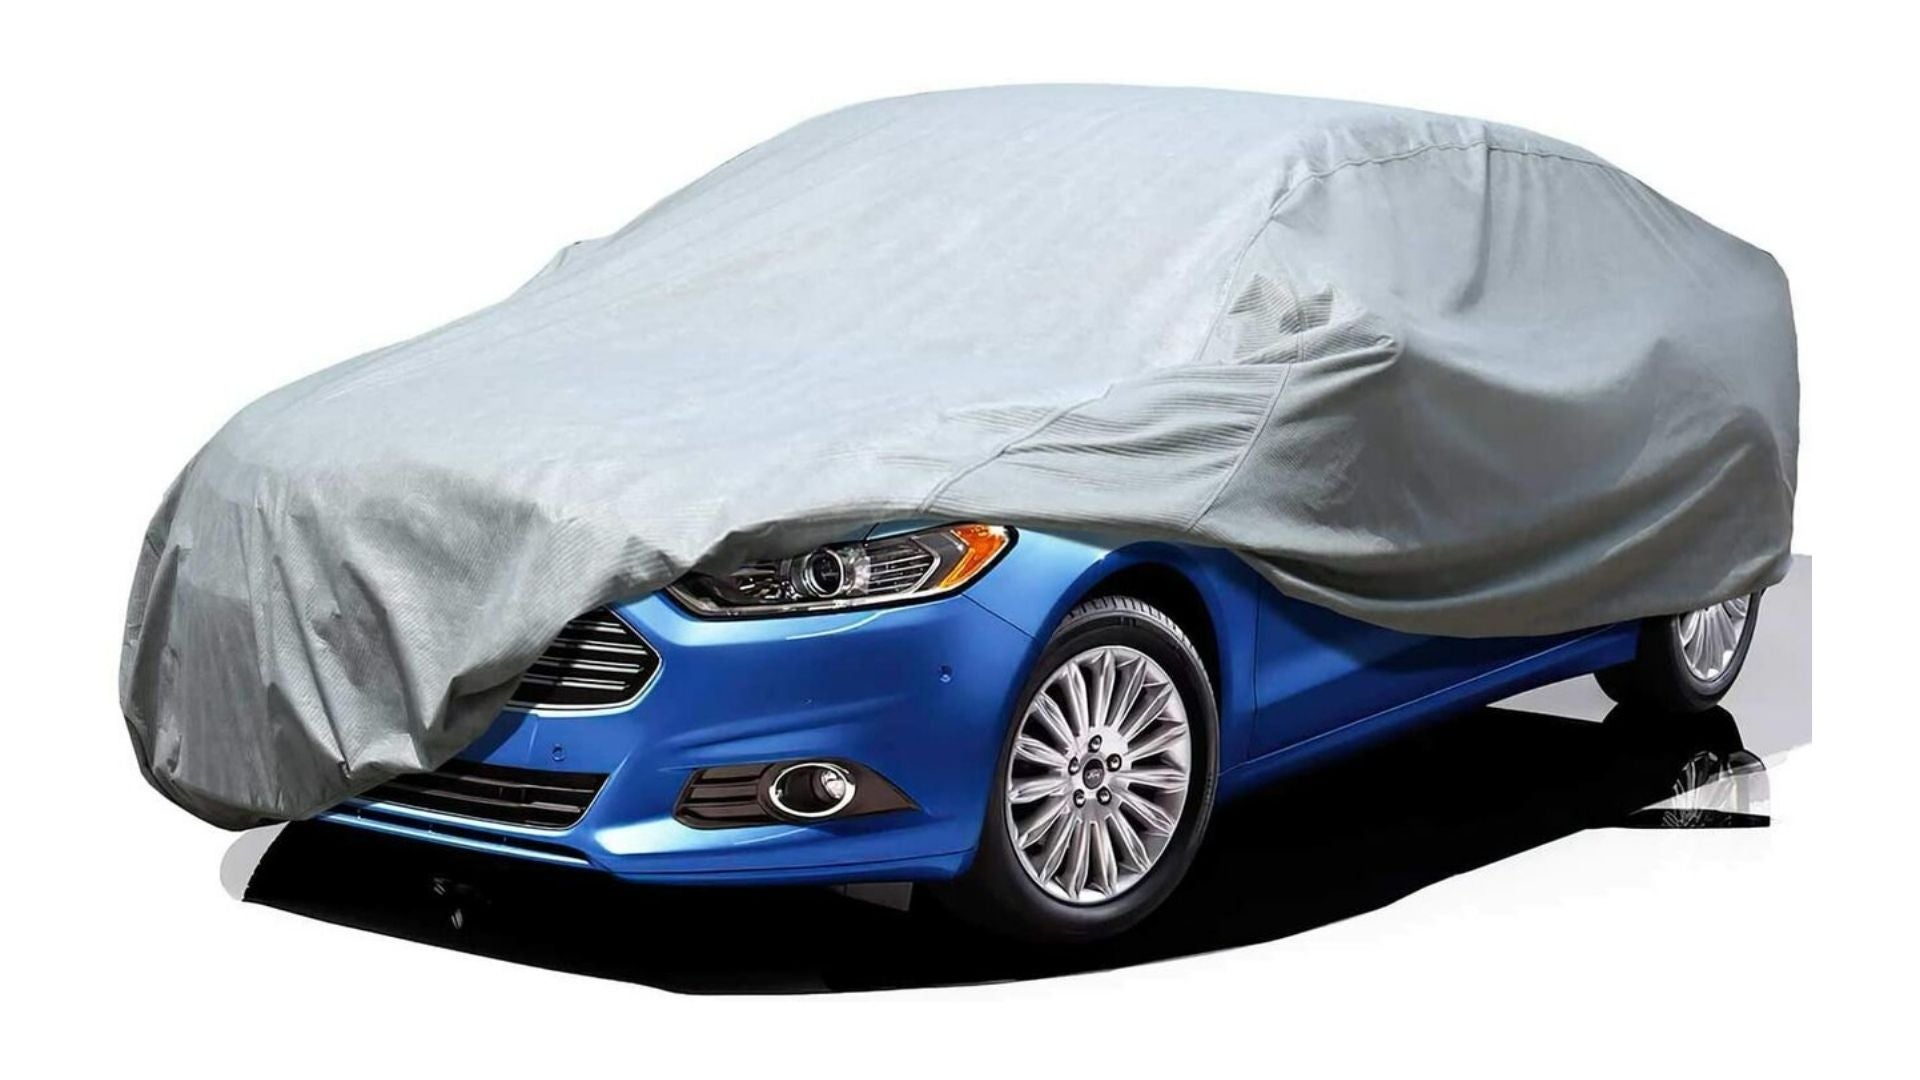 Leader Accessories All-Weather Basic Protection Car Cover